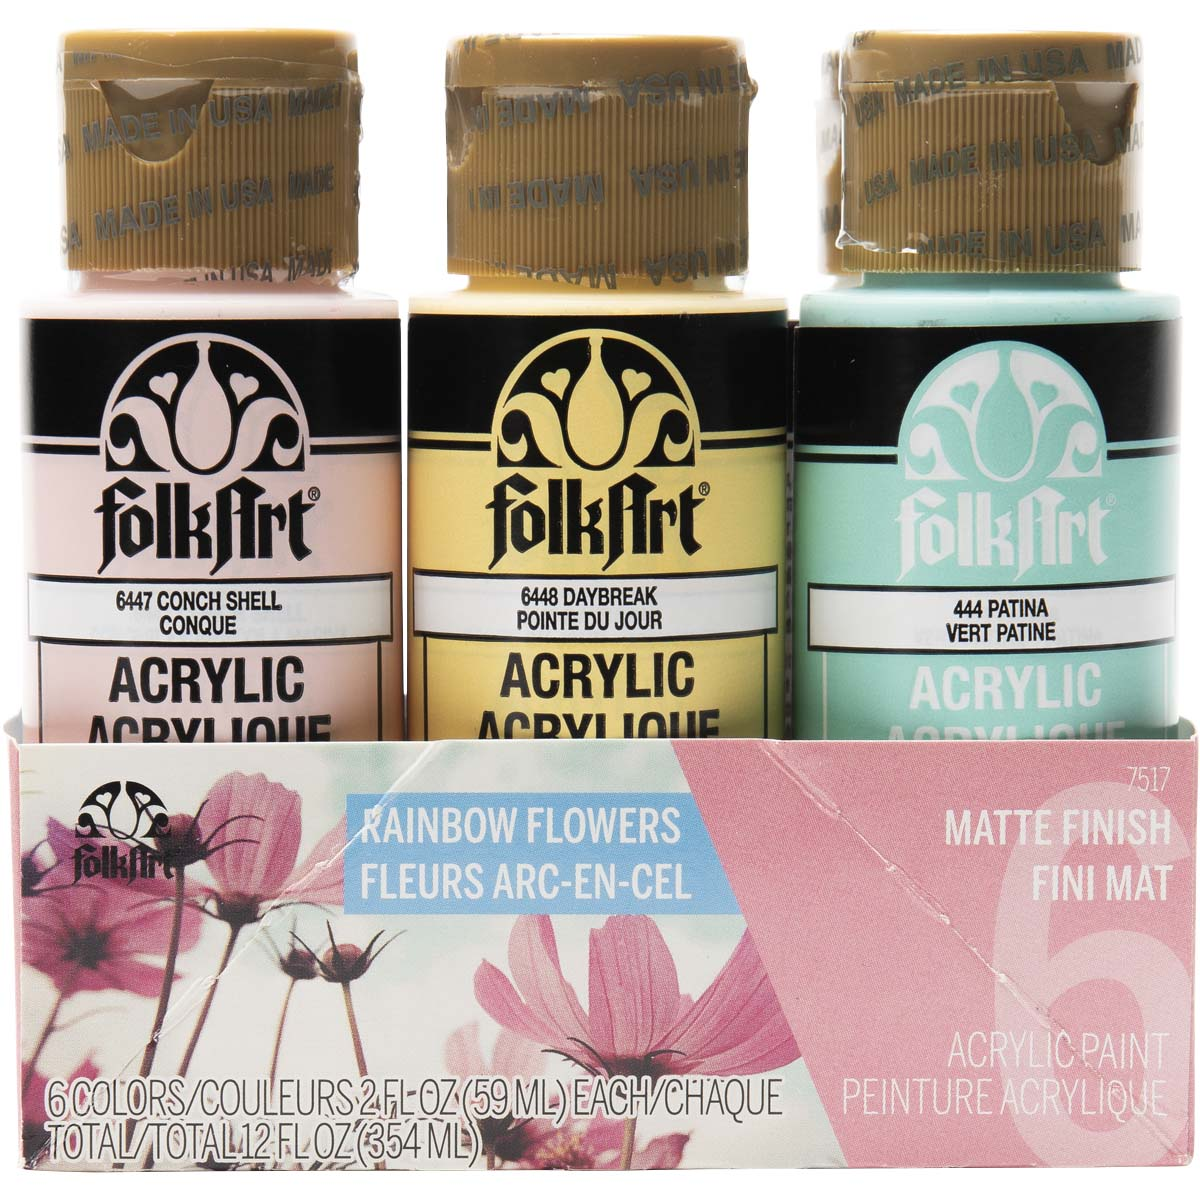 FolkArt ® Acrylic Colors Paint Set 6 Color - Rainbow Flower - 7517